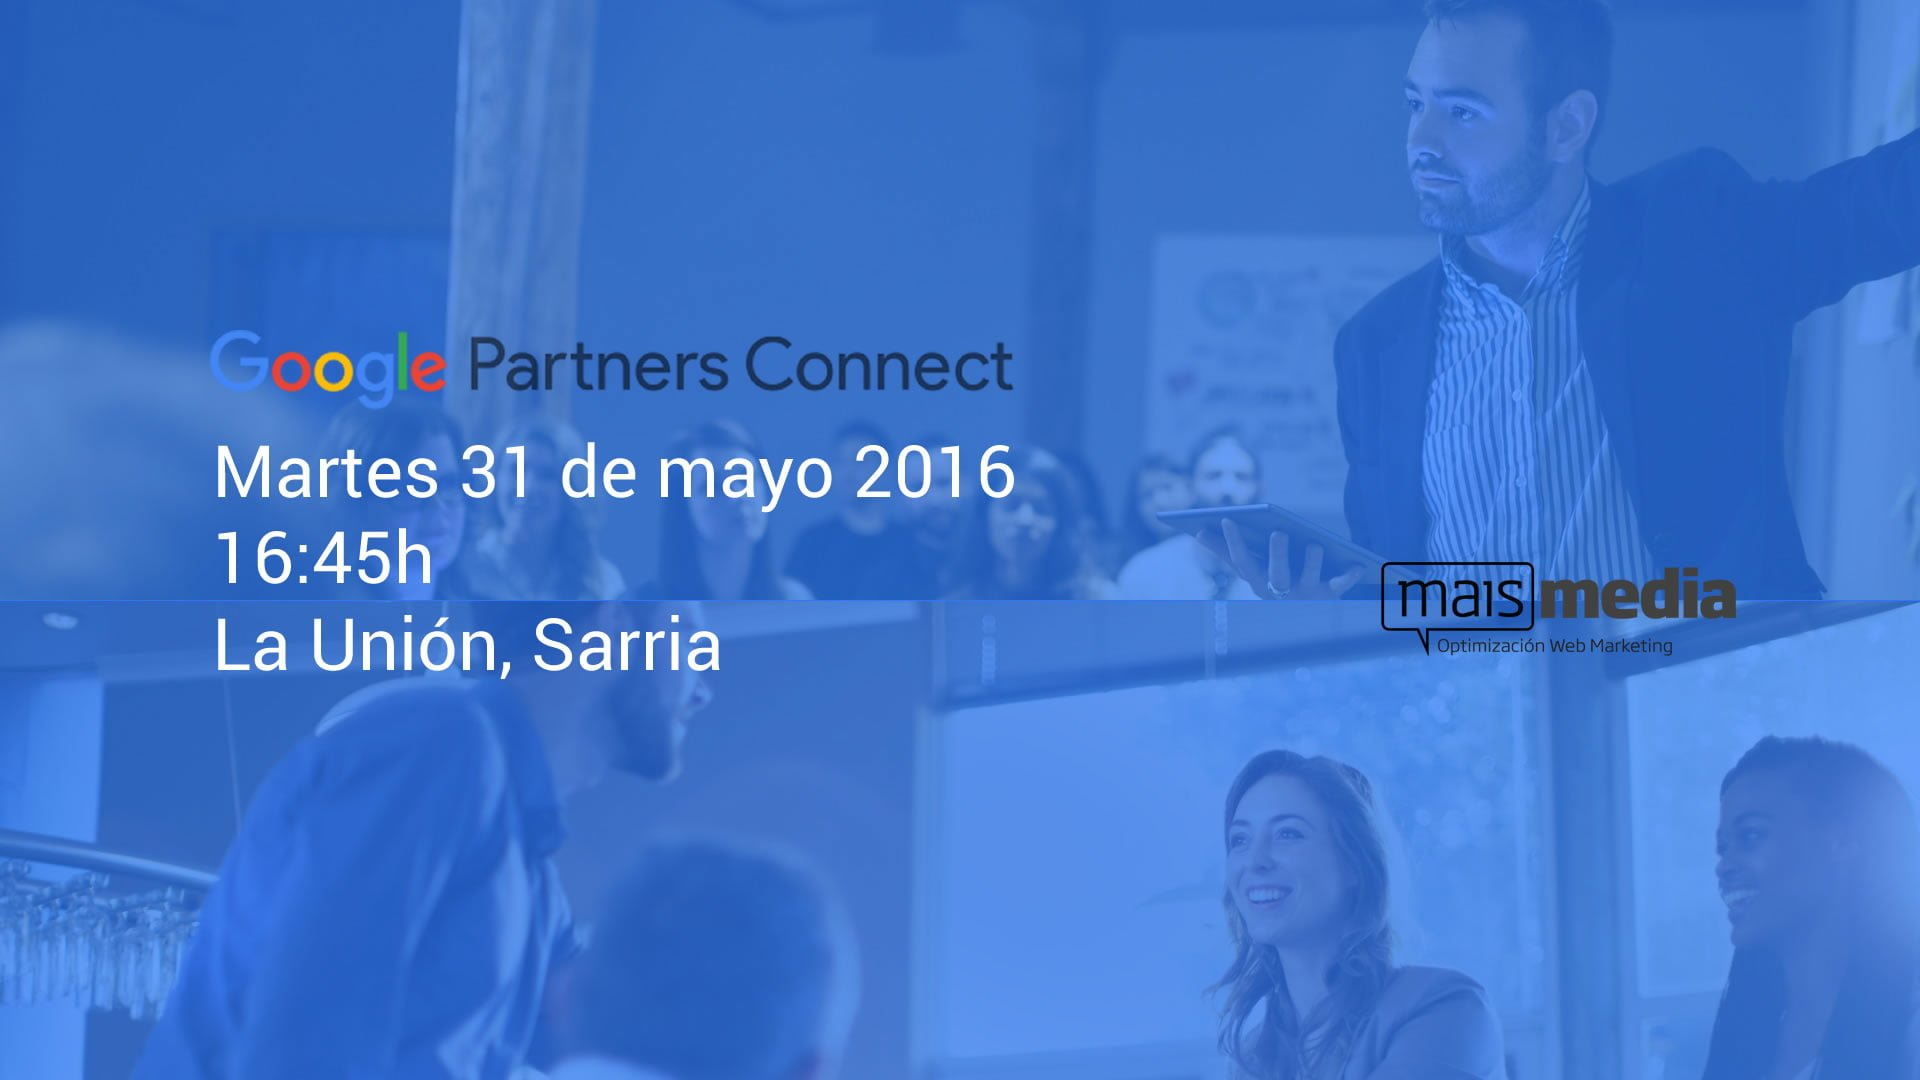 Google Partners Connect: Sarria, Lugo